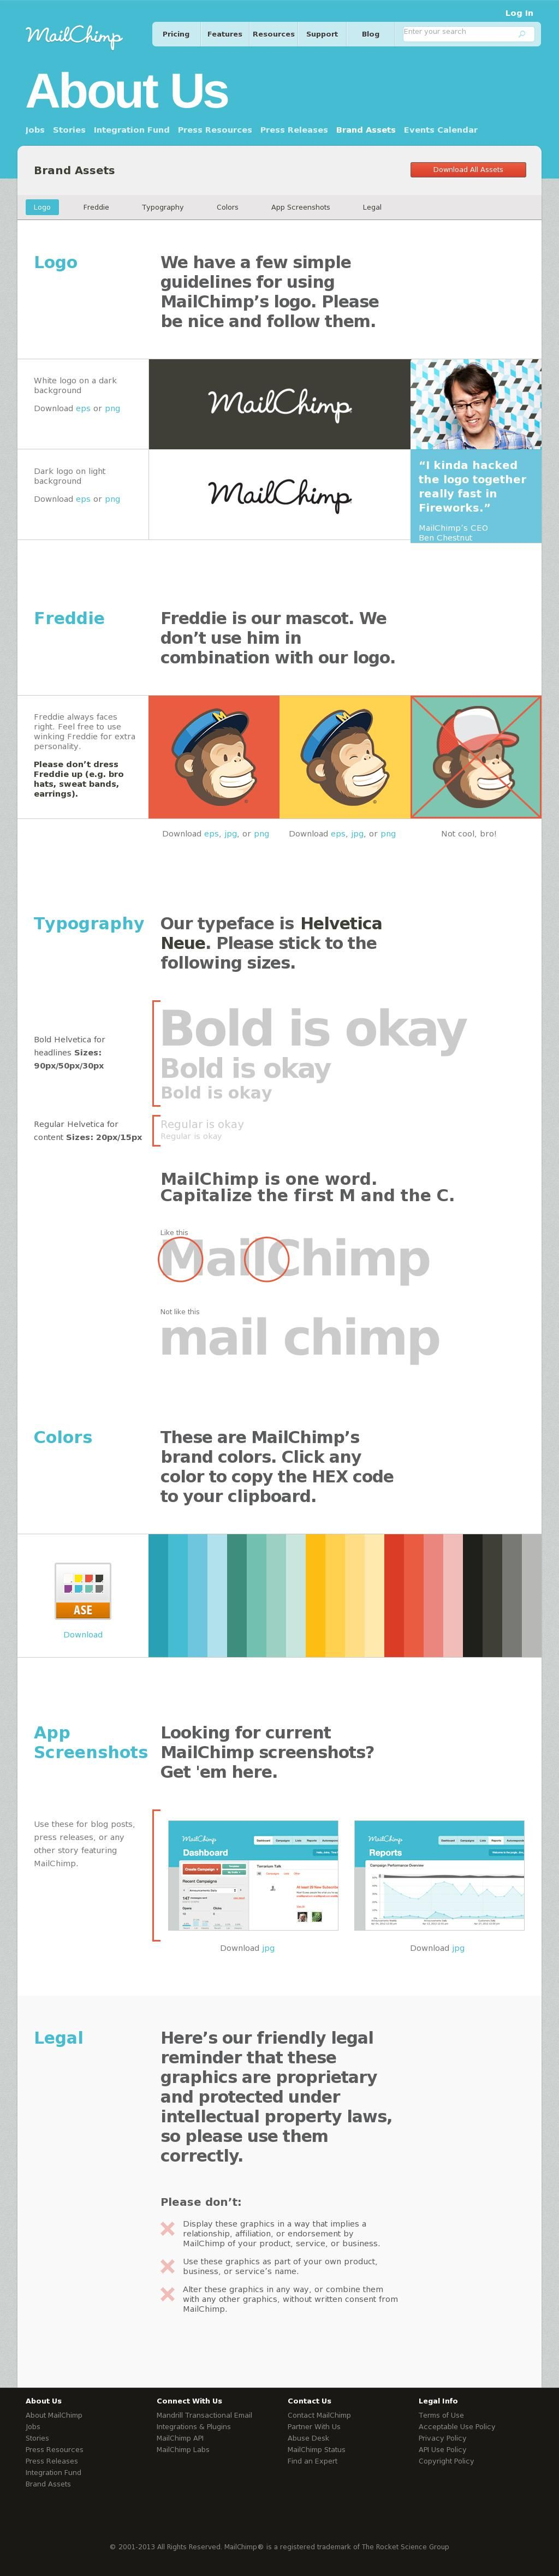 Pin by Tiffany Shih on Design | Brand assets, Brand guidelines